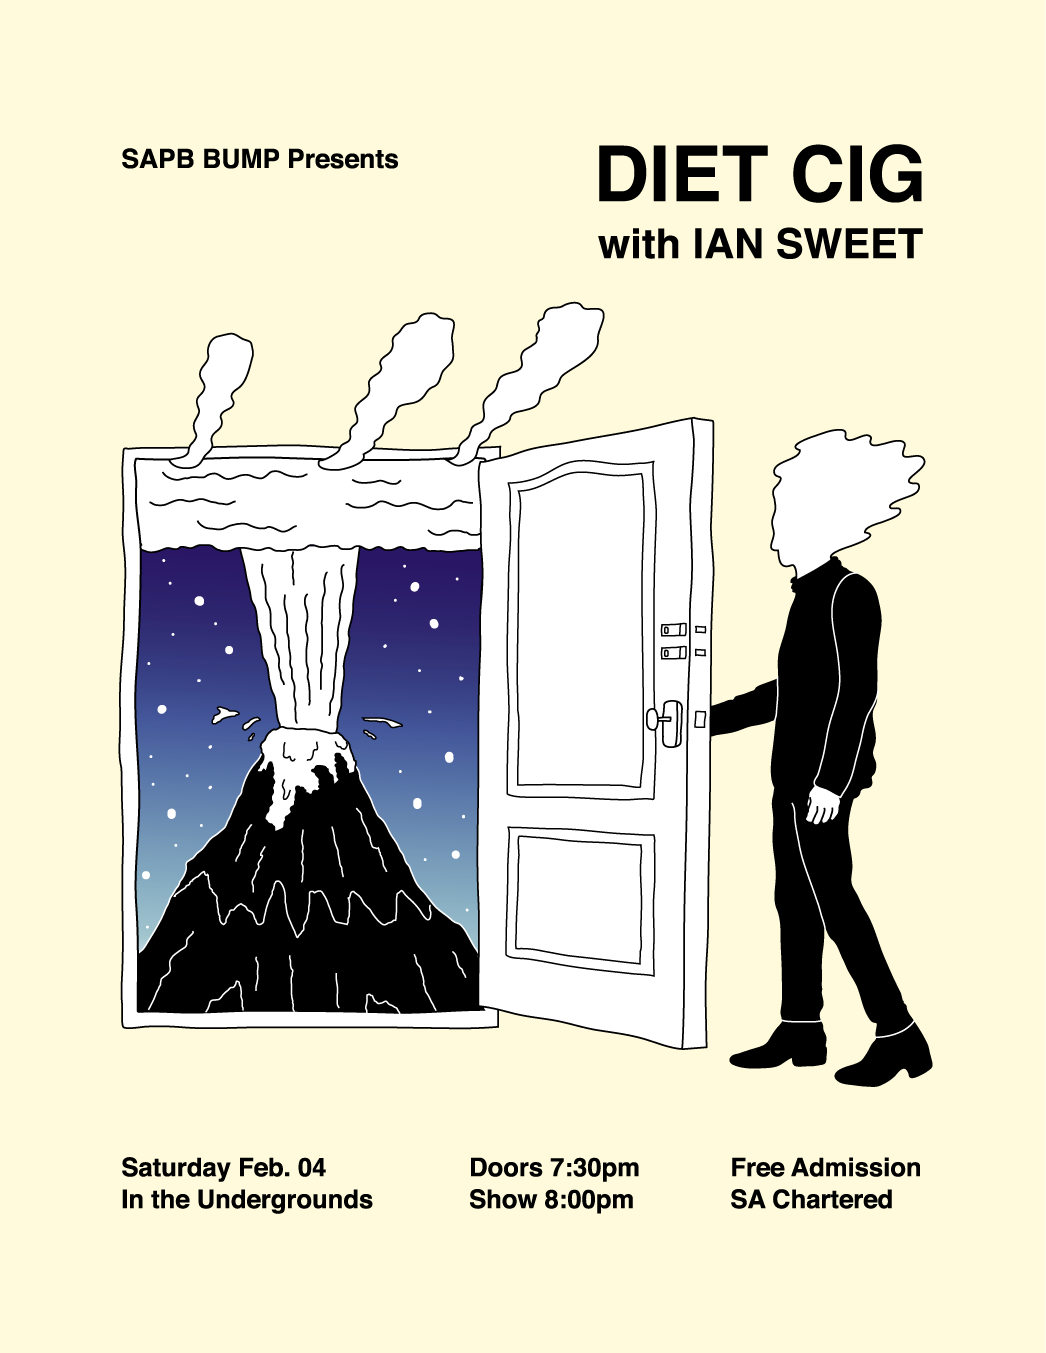 Concert poster for Diet Cig and Ian Sweet